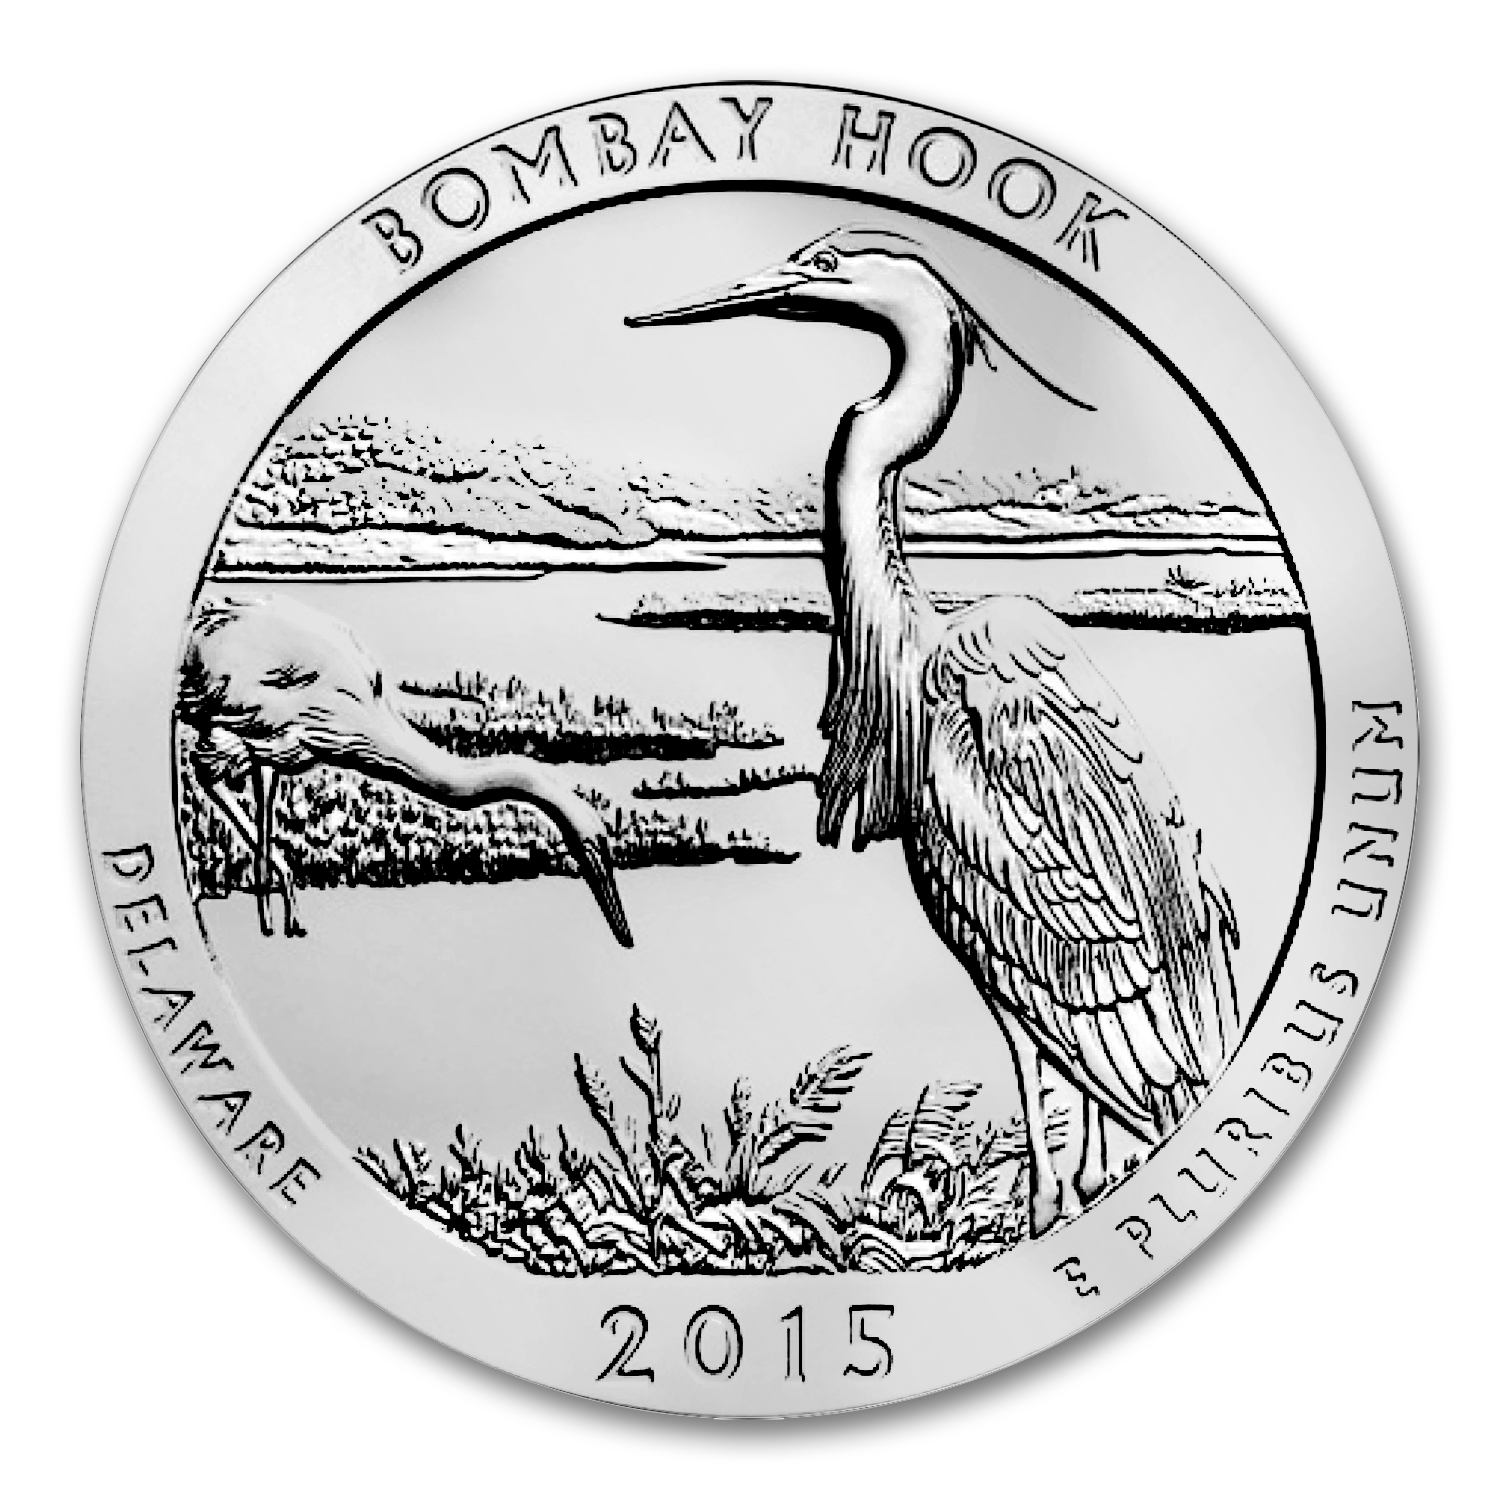 2015 5 oz Silver ATB Bombay Hook (Sealed Monster Box)